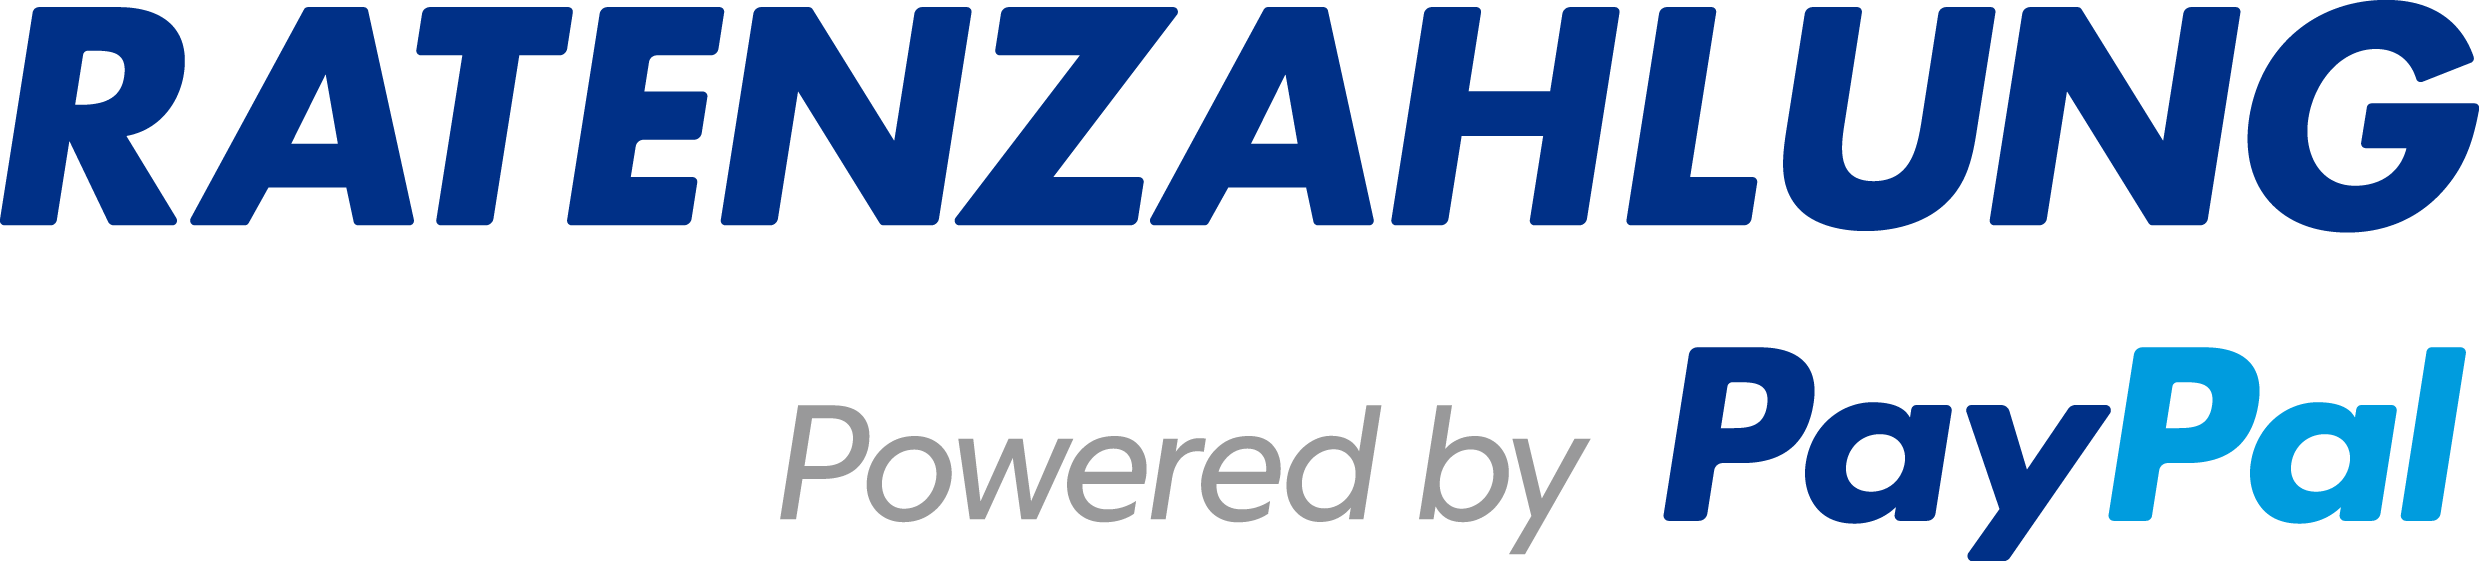 Ratenzahlung powered by PayPal - Logo